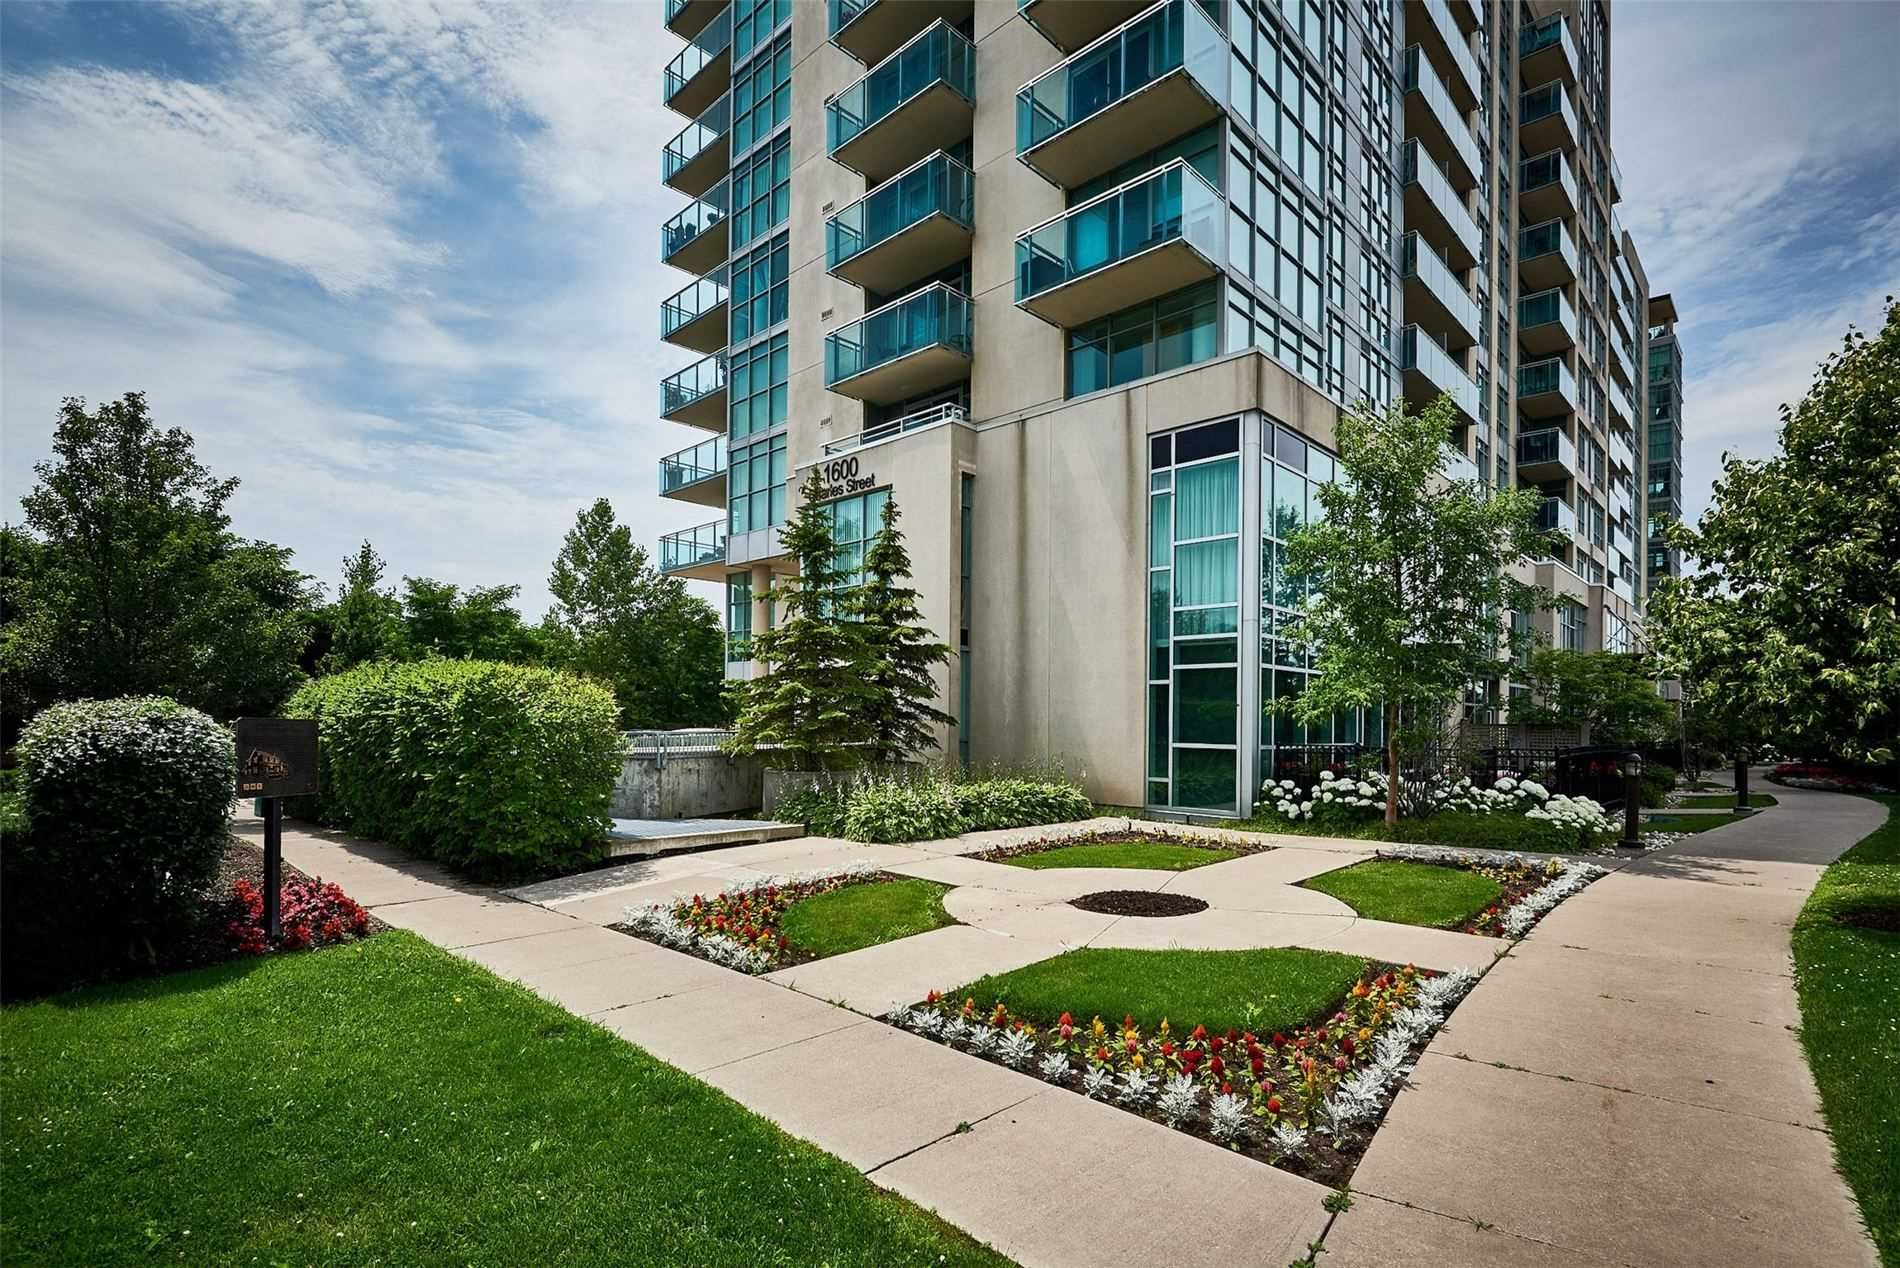 Photo of 1600 Charles St #604, Whitby, ON L1N 0G4 (MLS # E5324382)